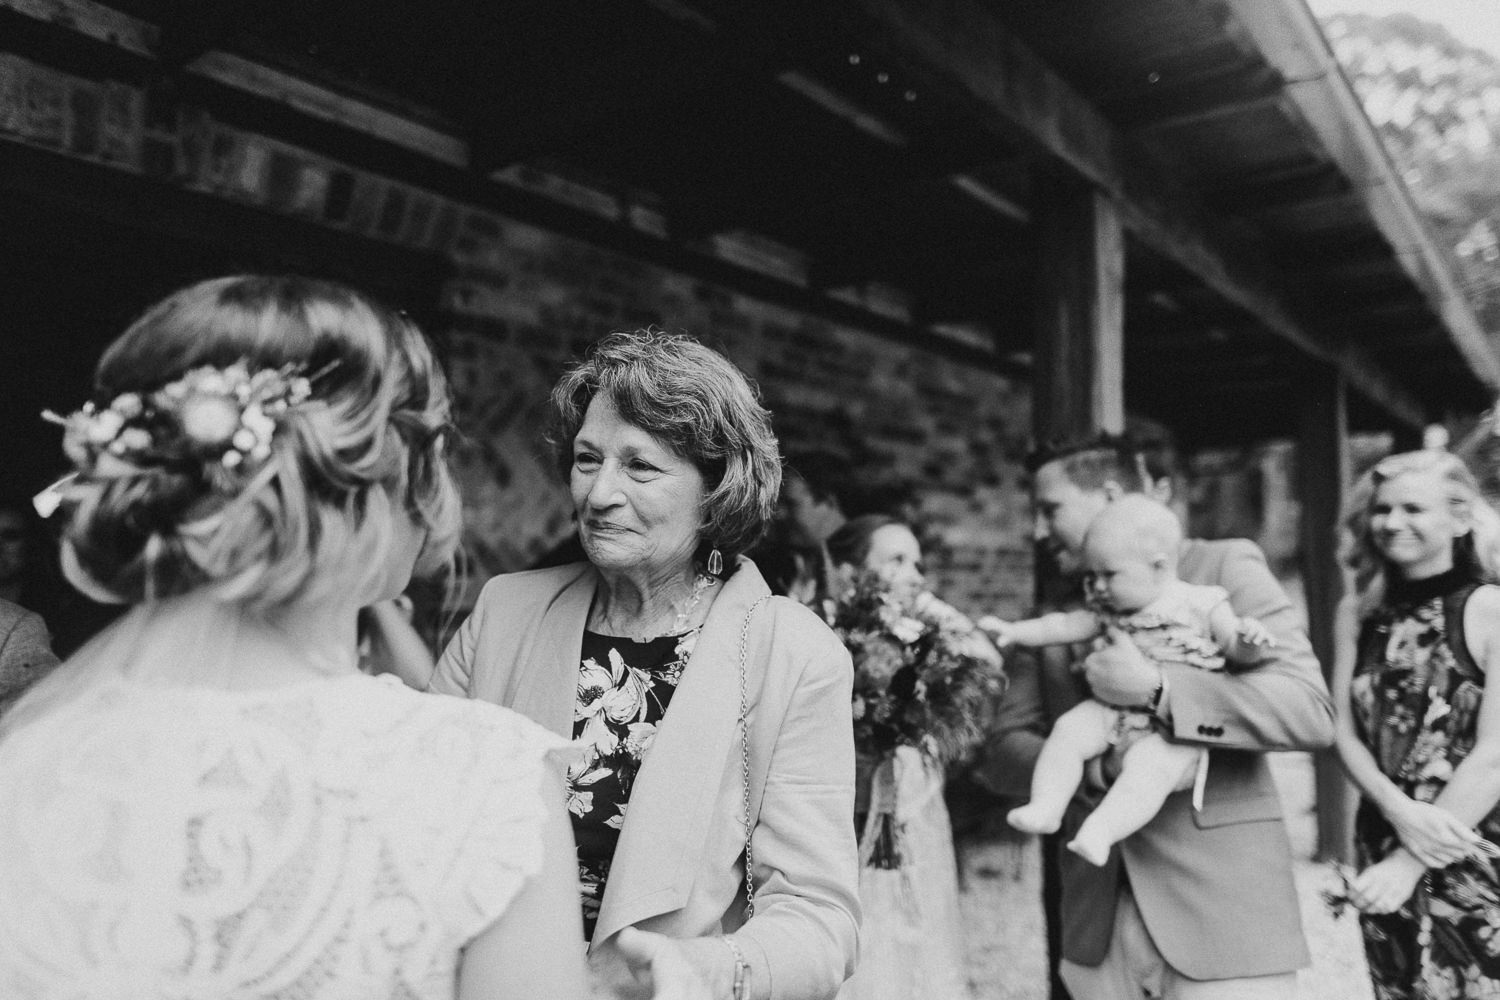 069-mali-brae-wedding-amy-michael